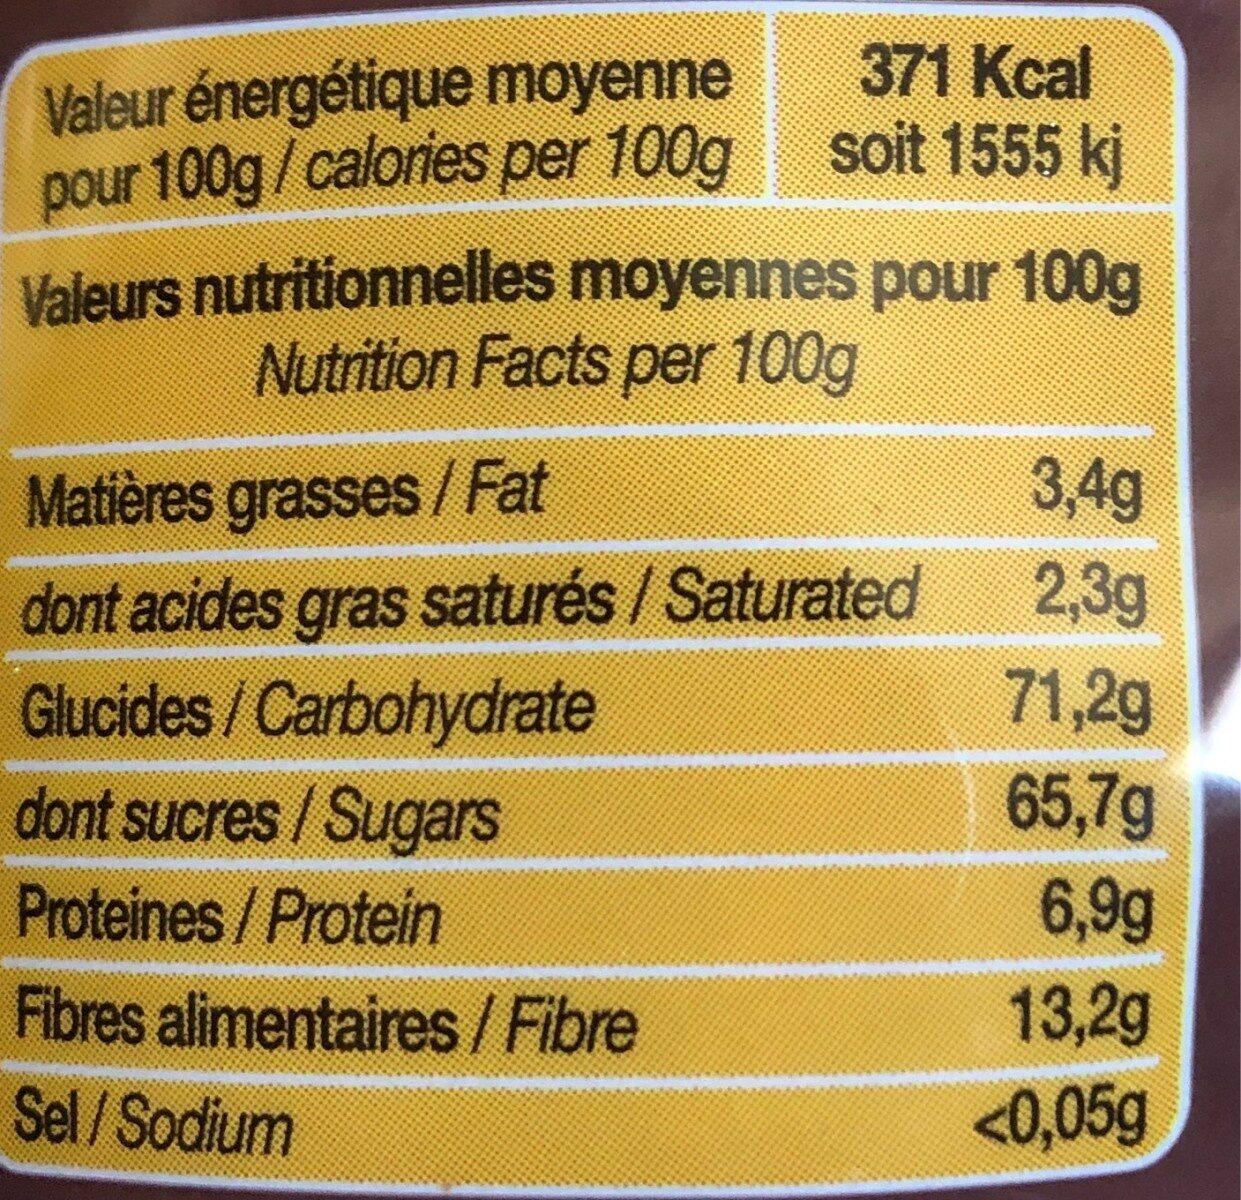 Instant choco - Informations nutritionnelles - fr